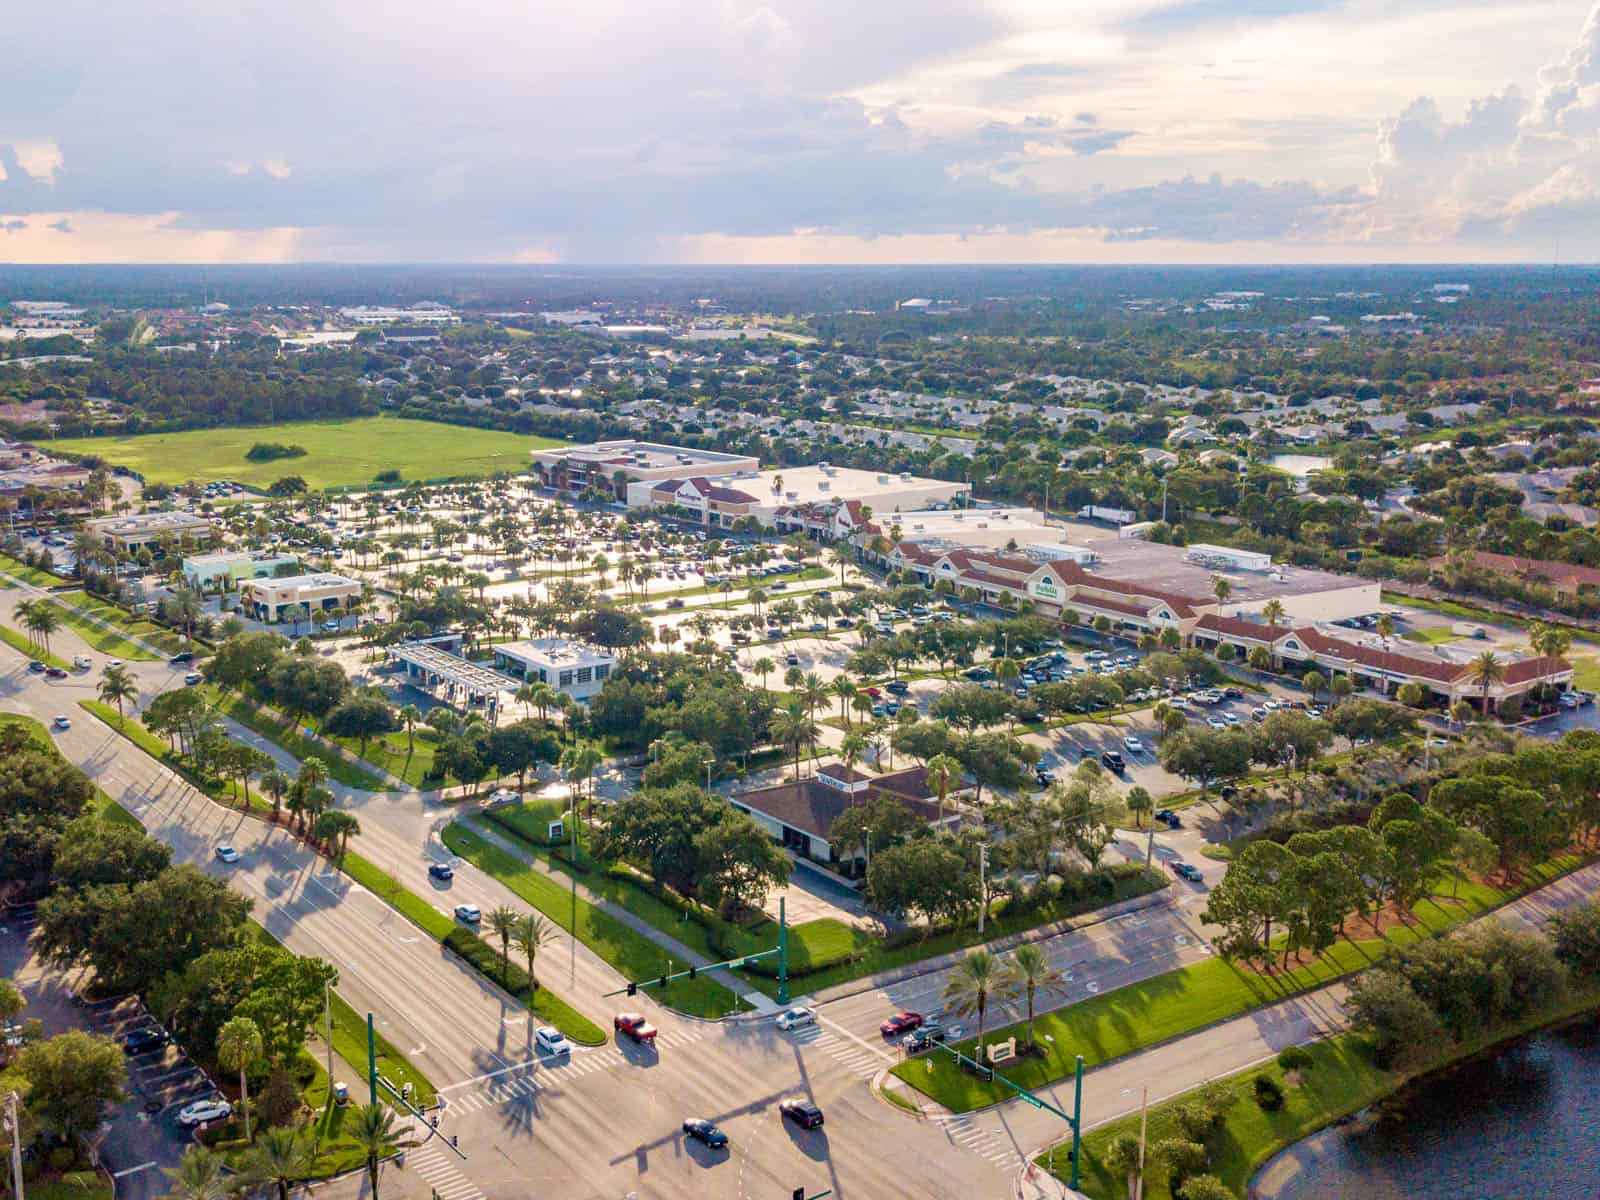 aerial drone photo of strip mall in Port St. Lucie, Florida